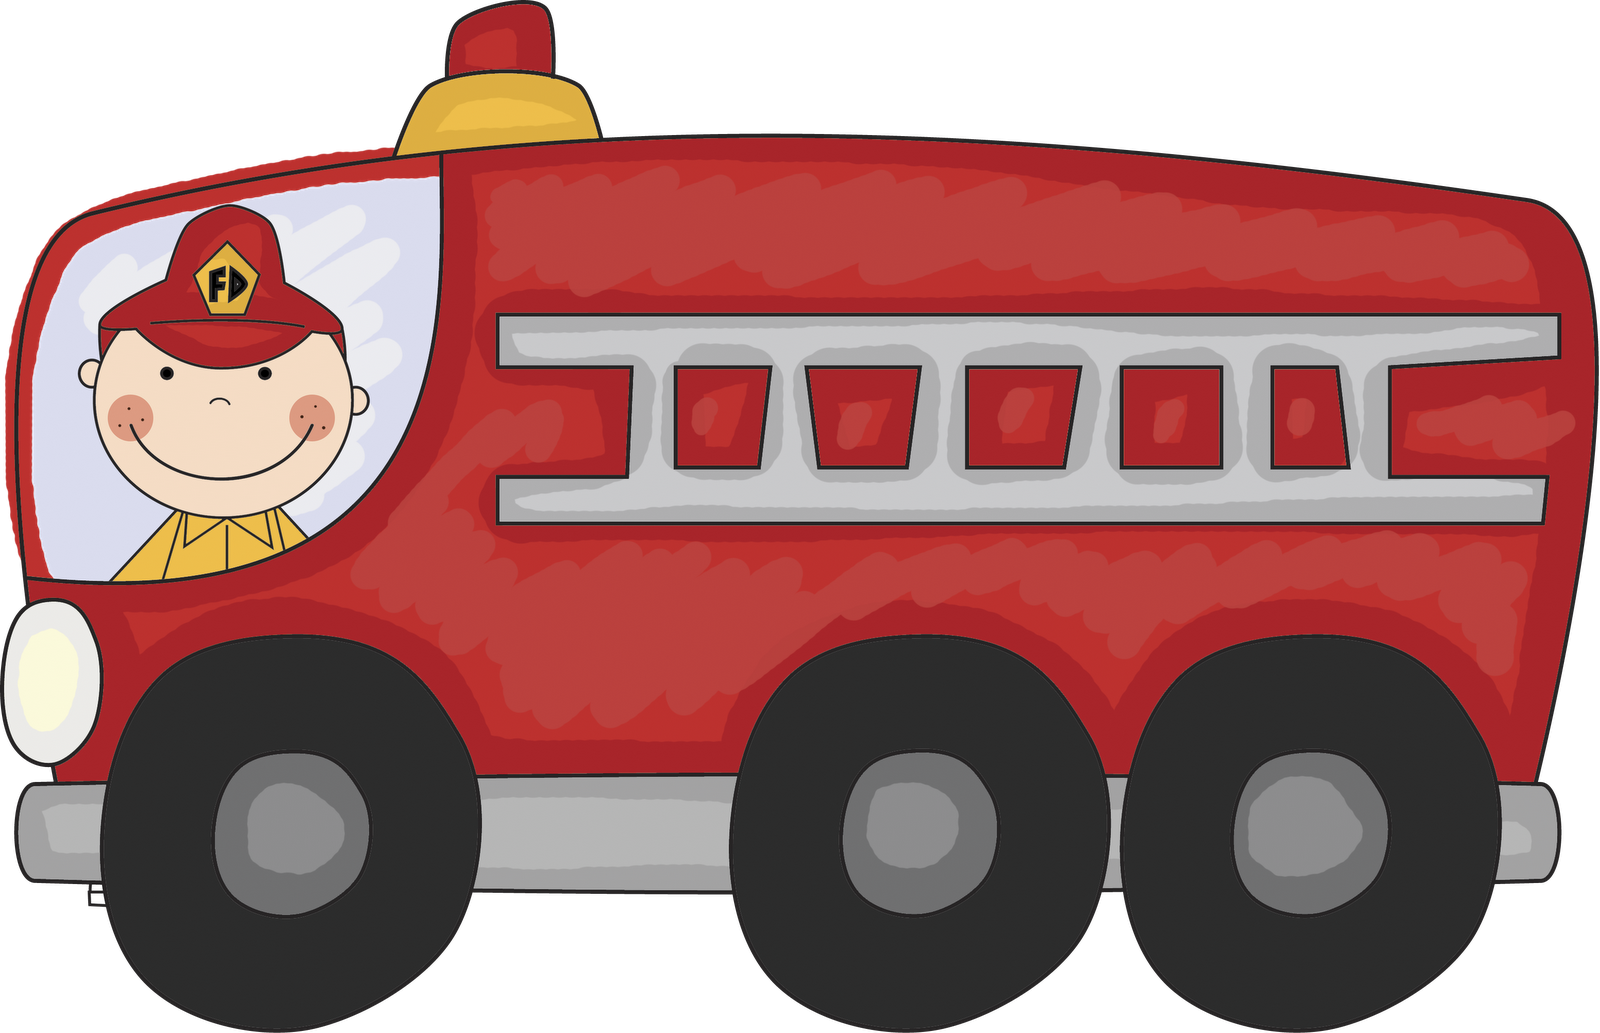 Vintage fire truck clipart free clipart -Vintage fire truck clipart free clipart images-7